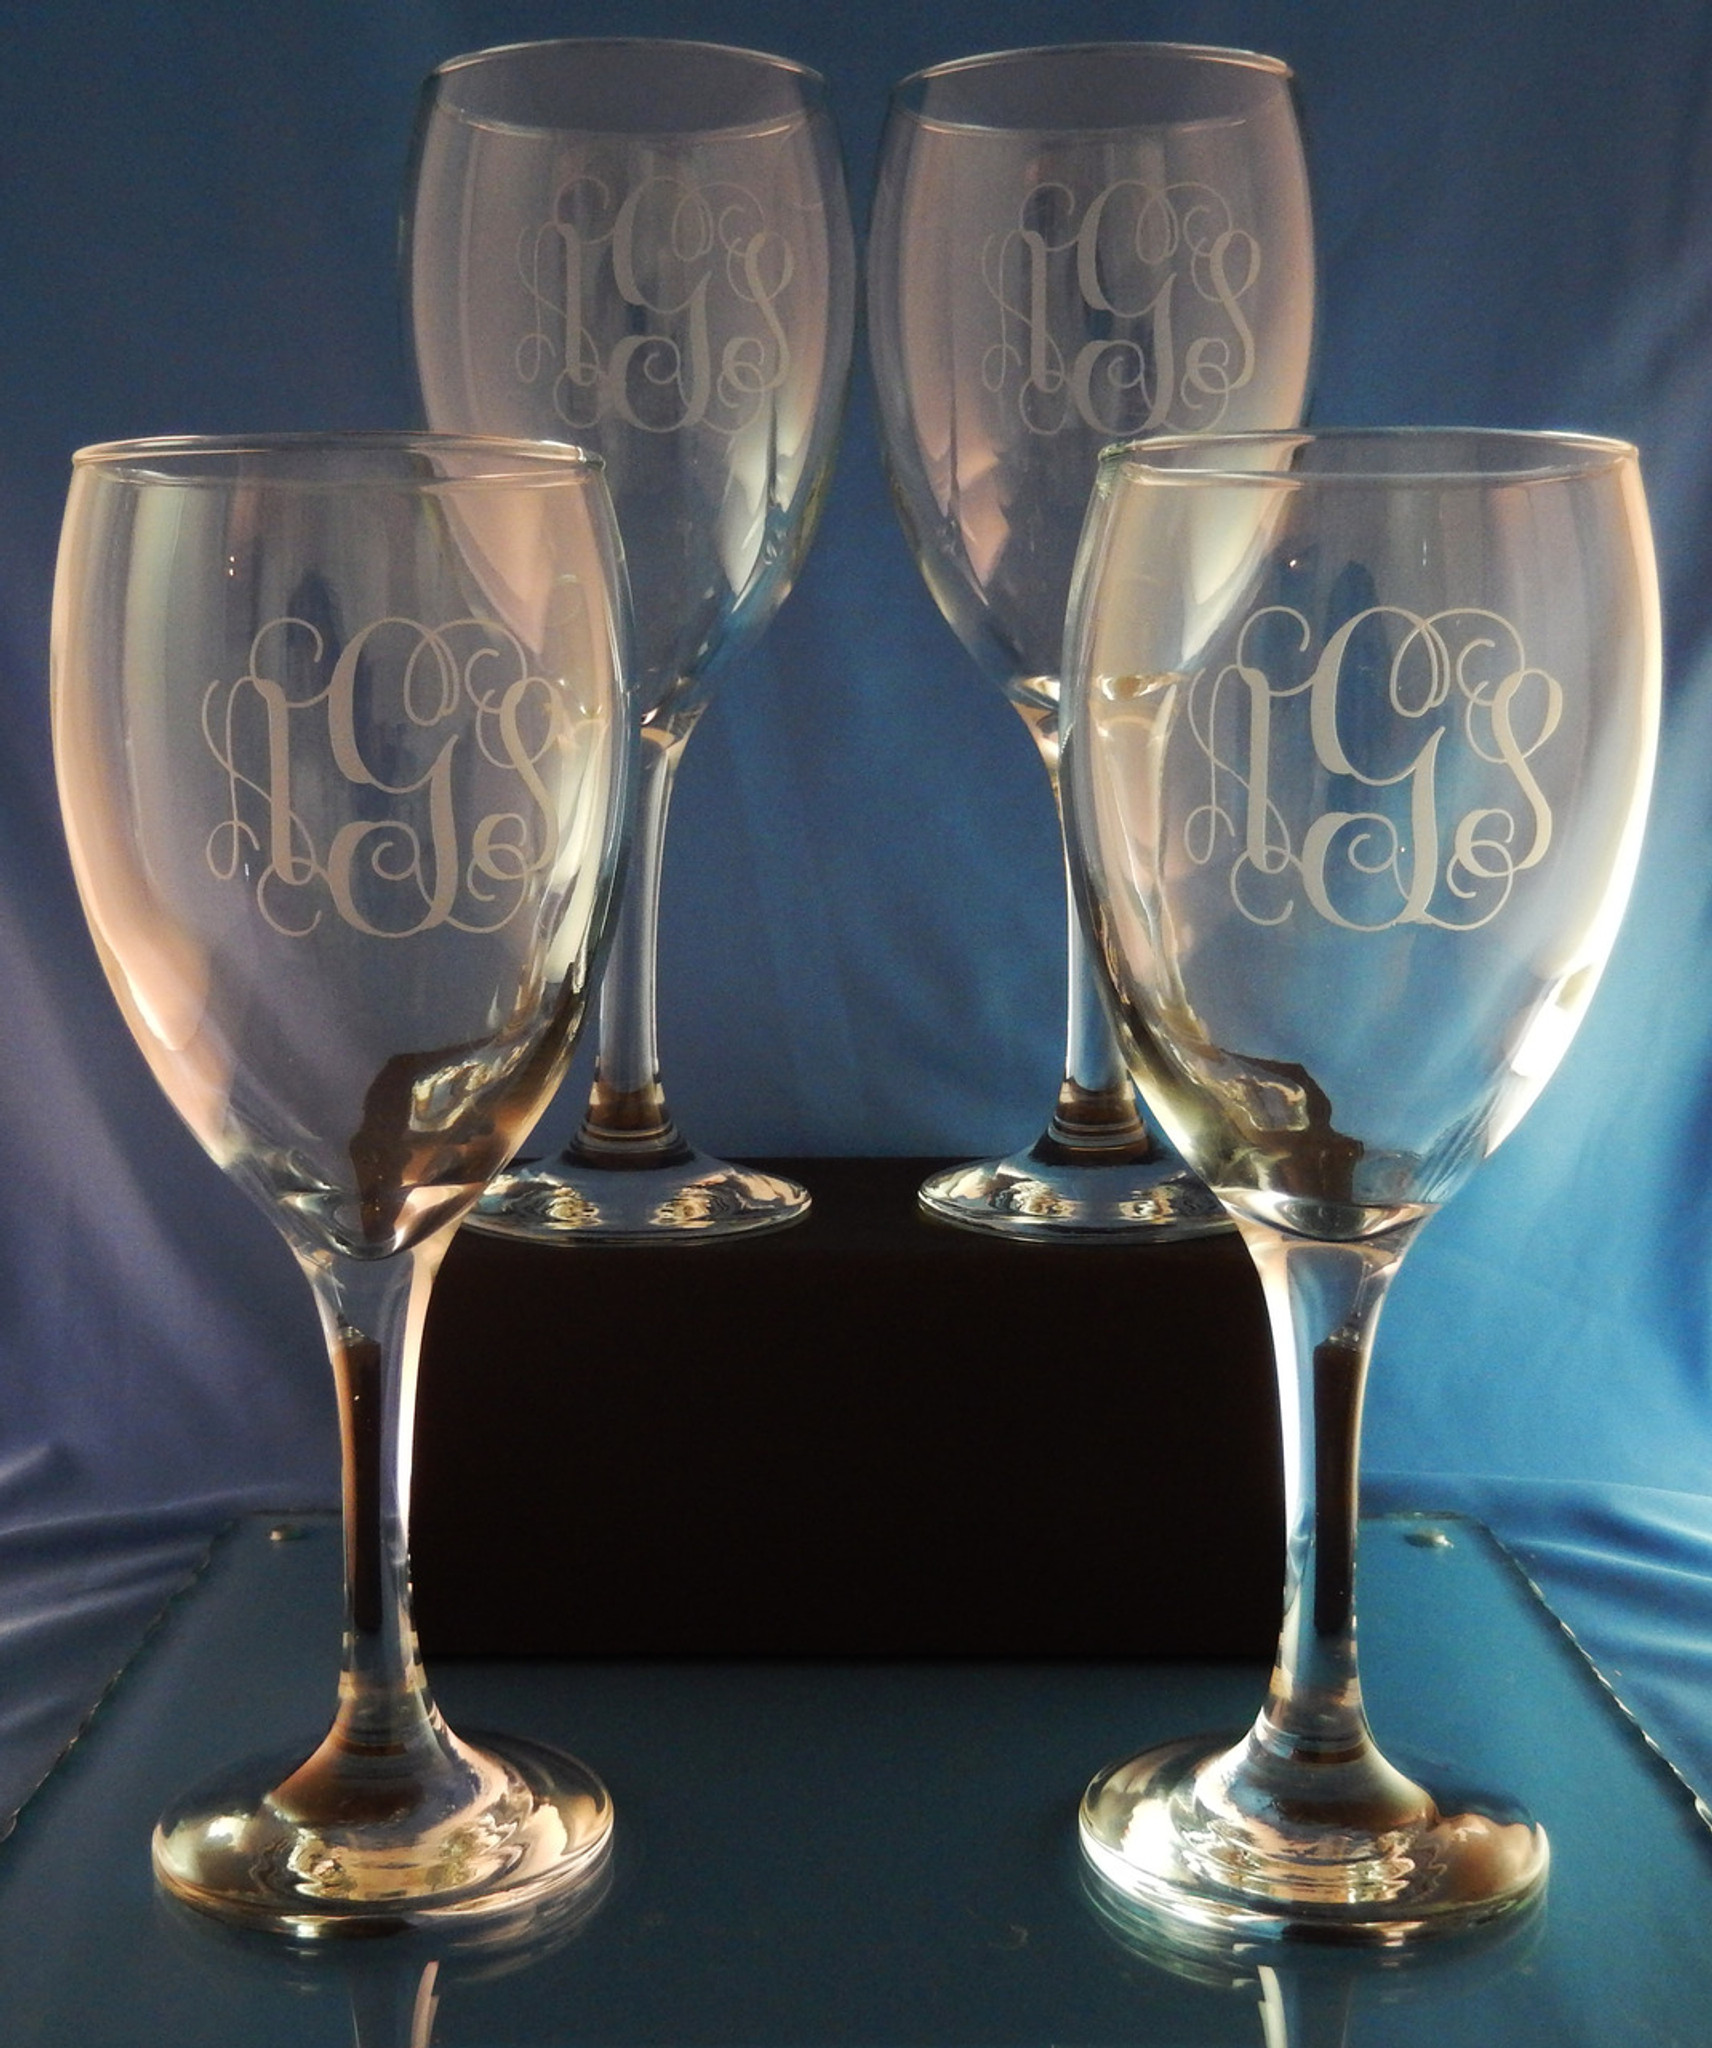 Personalized robusto crystal wine glasses set of 4 the Big w wine glasses